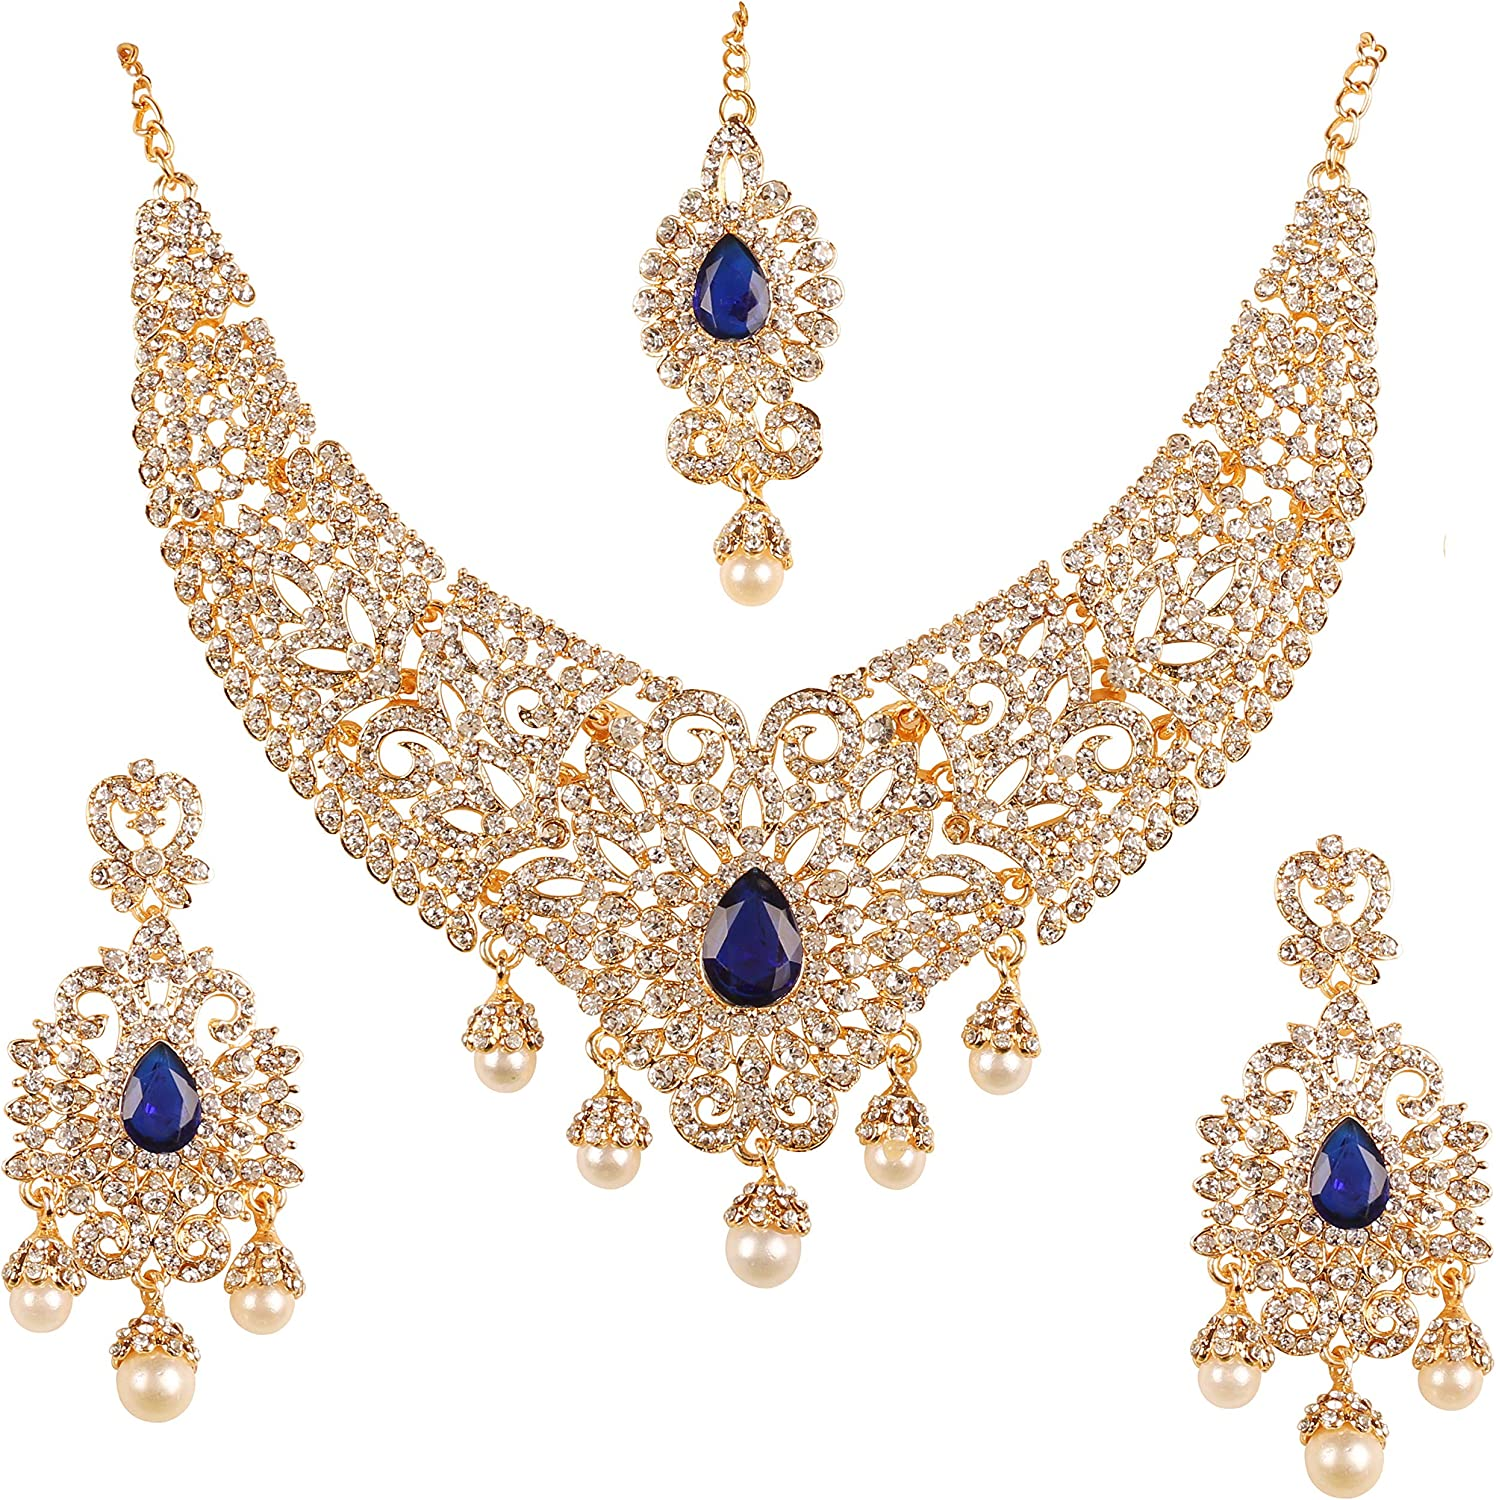 Touchstone Indian Bollywood Gorgeous Intricate Spark Quantity limited Now free shipping Workmanship